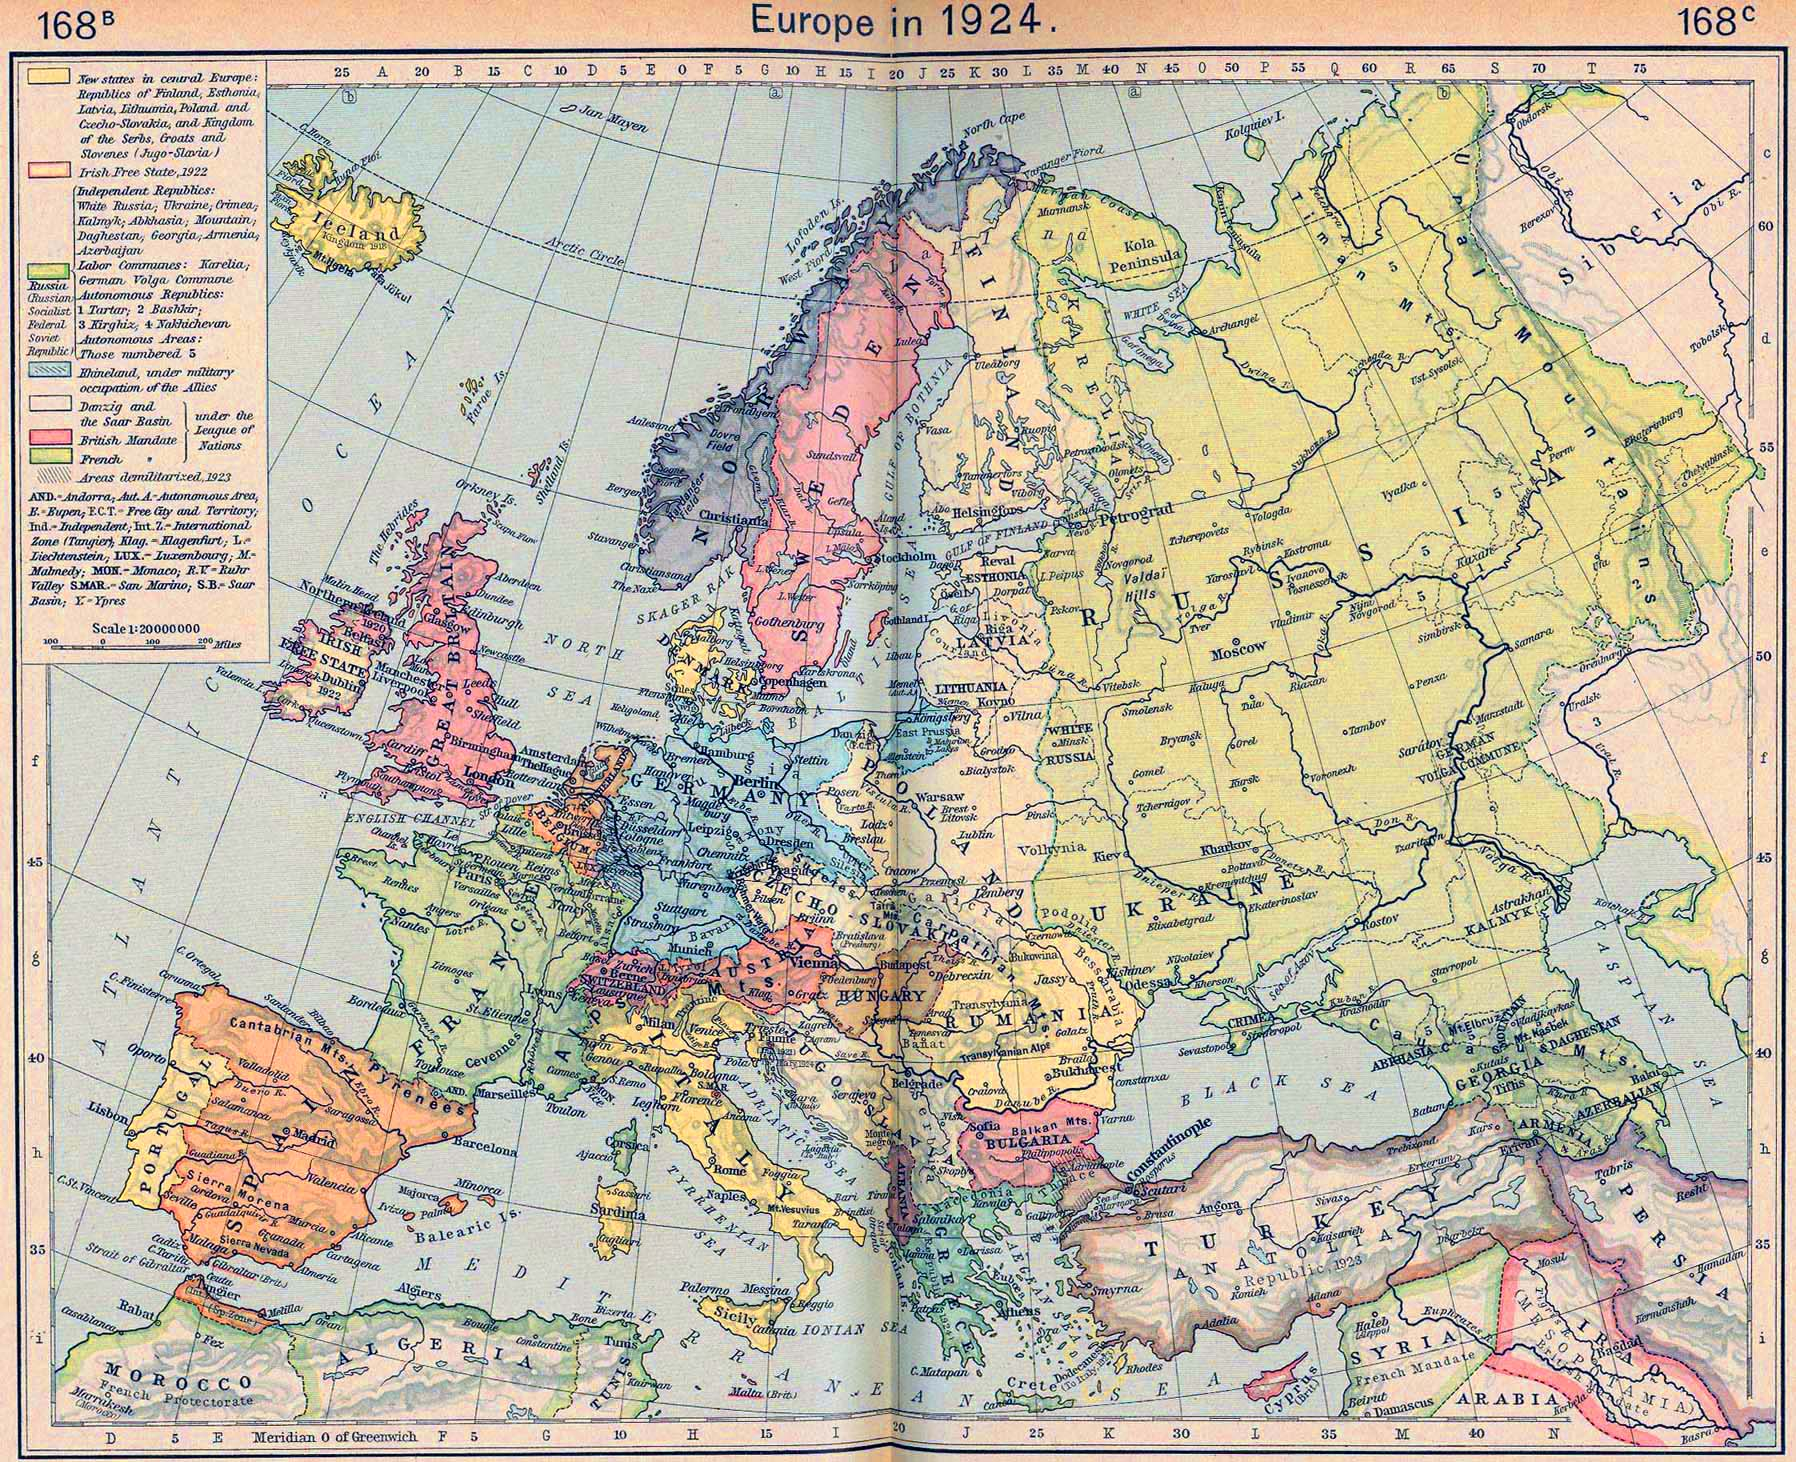 Map of Europe in 1924 – European Map of the World